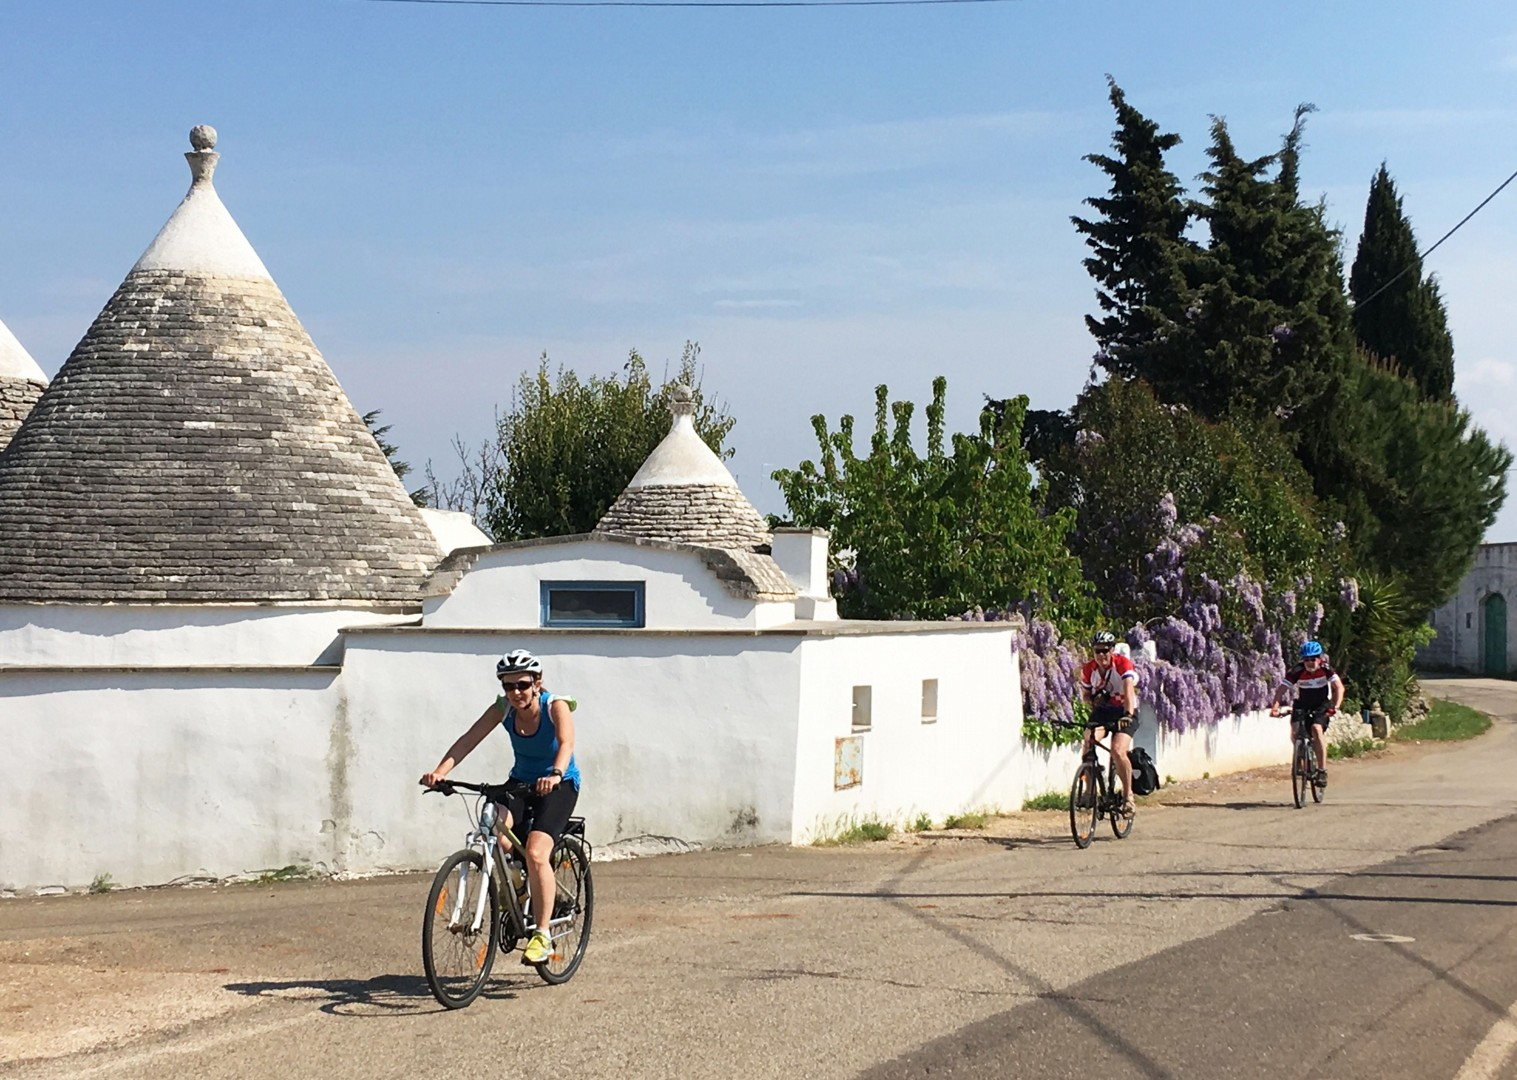 cycling-holiday-in-italy-puglia-Trulli-houses.jpg - Italy - Puglia - Guided Leisure Cycling Holiday - Italia Leisure and Family Cycling